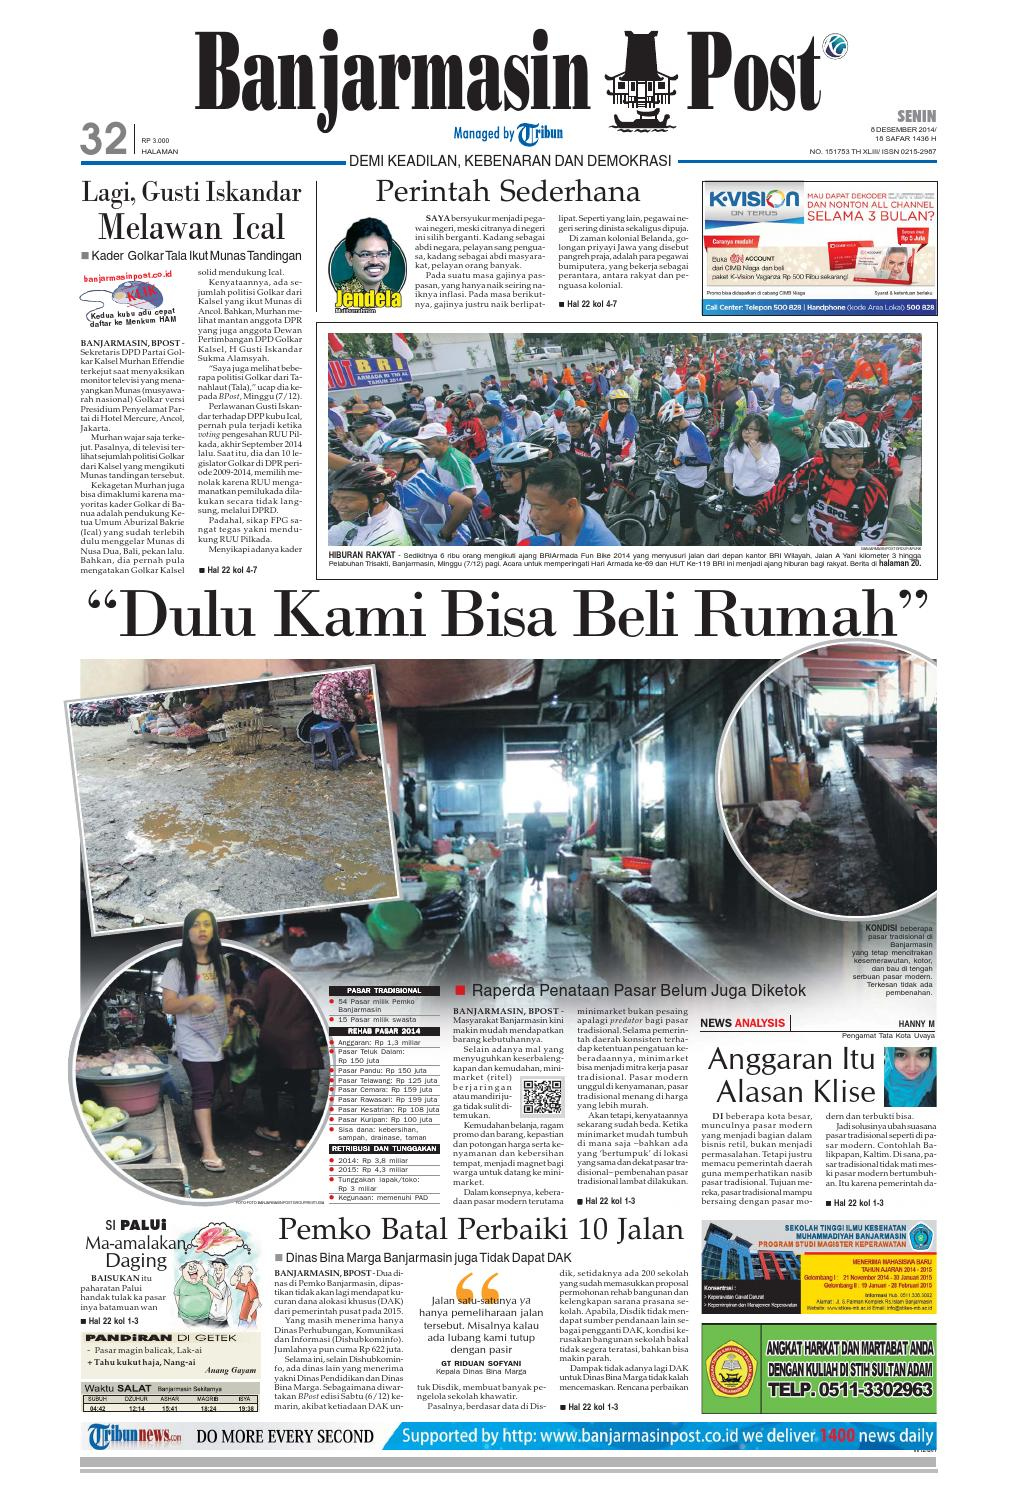 Banjarmasin Post Senin 8 Desember 2014 By Issuu Tcash Vaganza 35 Sarung Orange Instan Anak Usia 1 7 Tahun